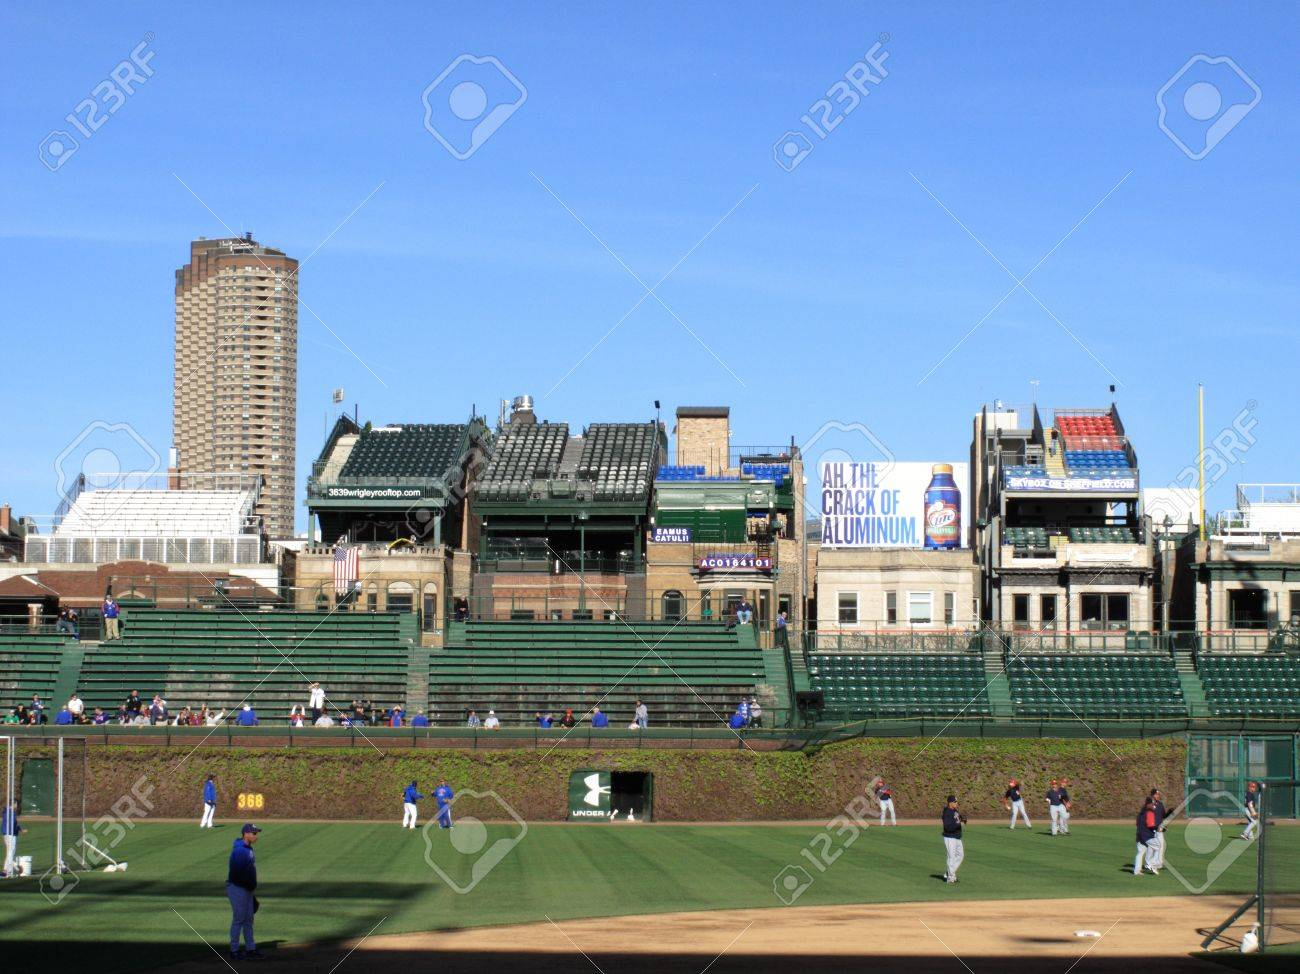 Wrigleyville Rooftops 3643 Sheffield - Chicago's Wrigley Rooftops ...